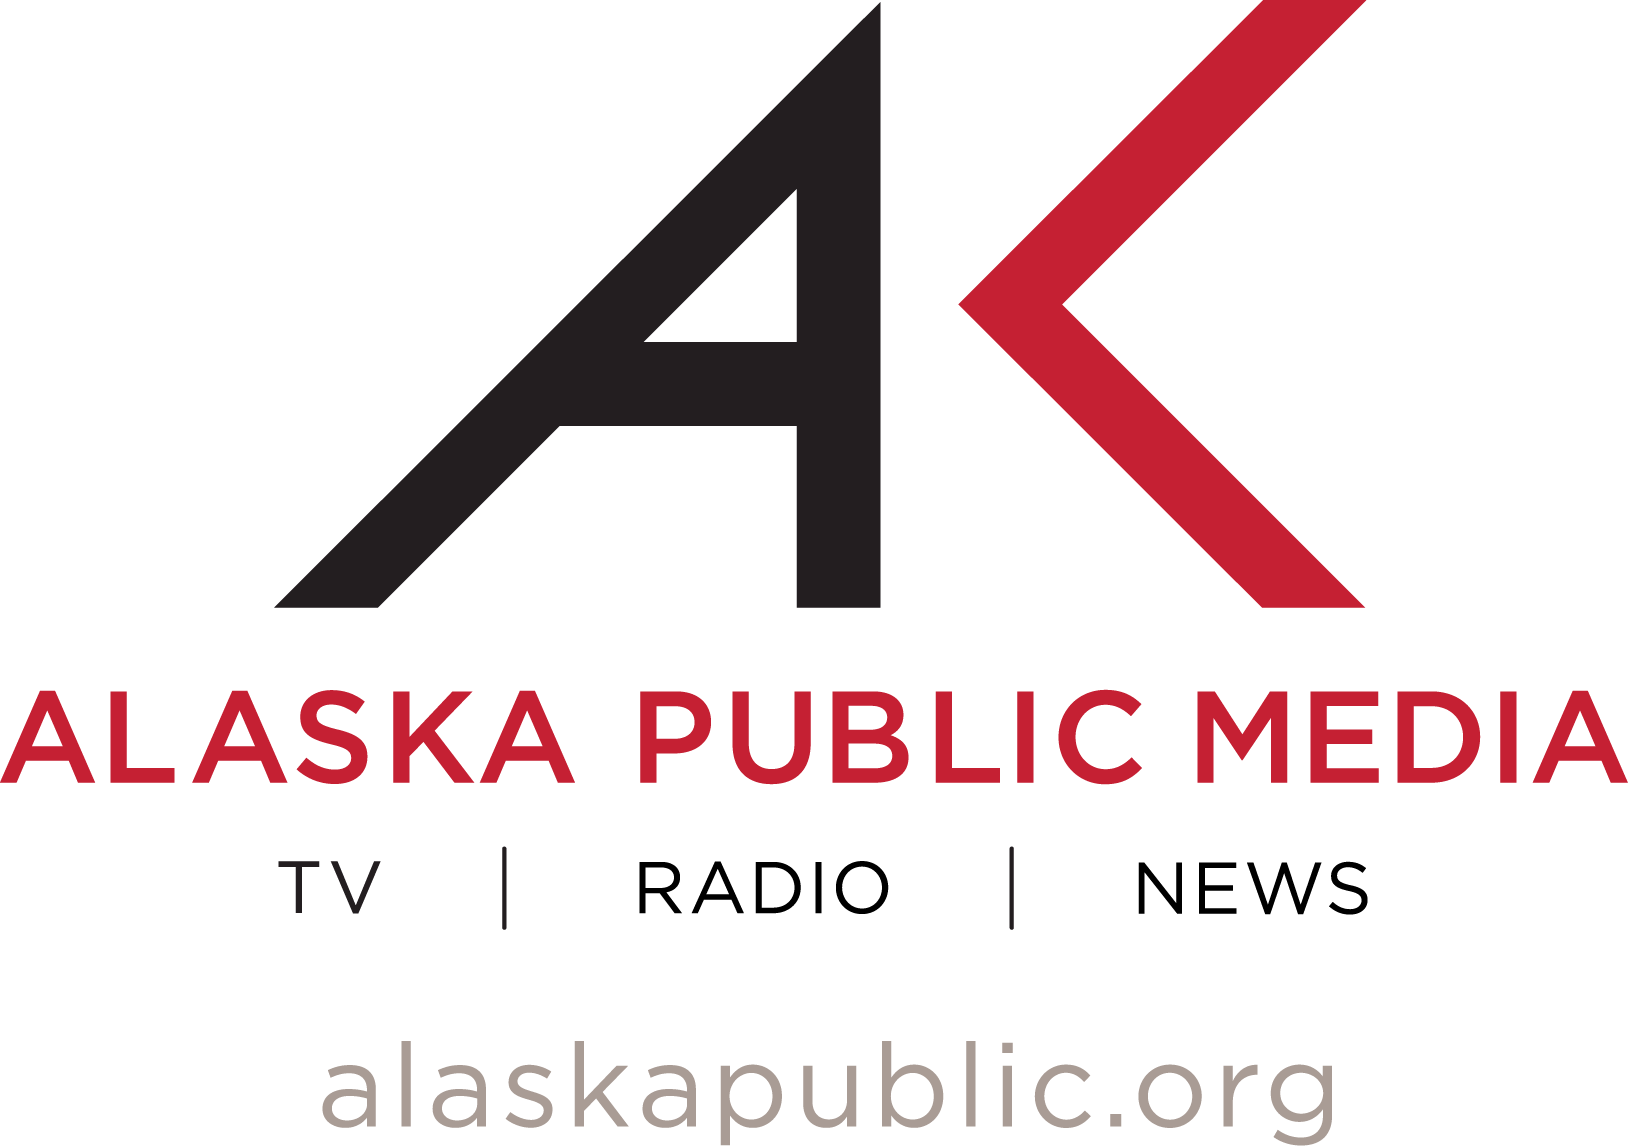 alaska_public_media-logo_lock-up